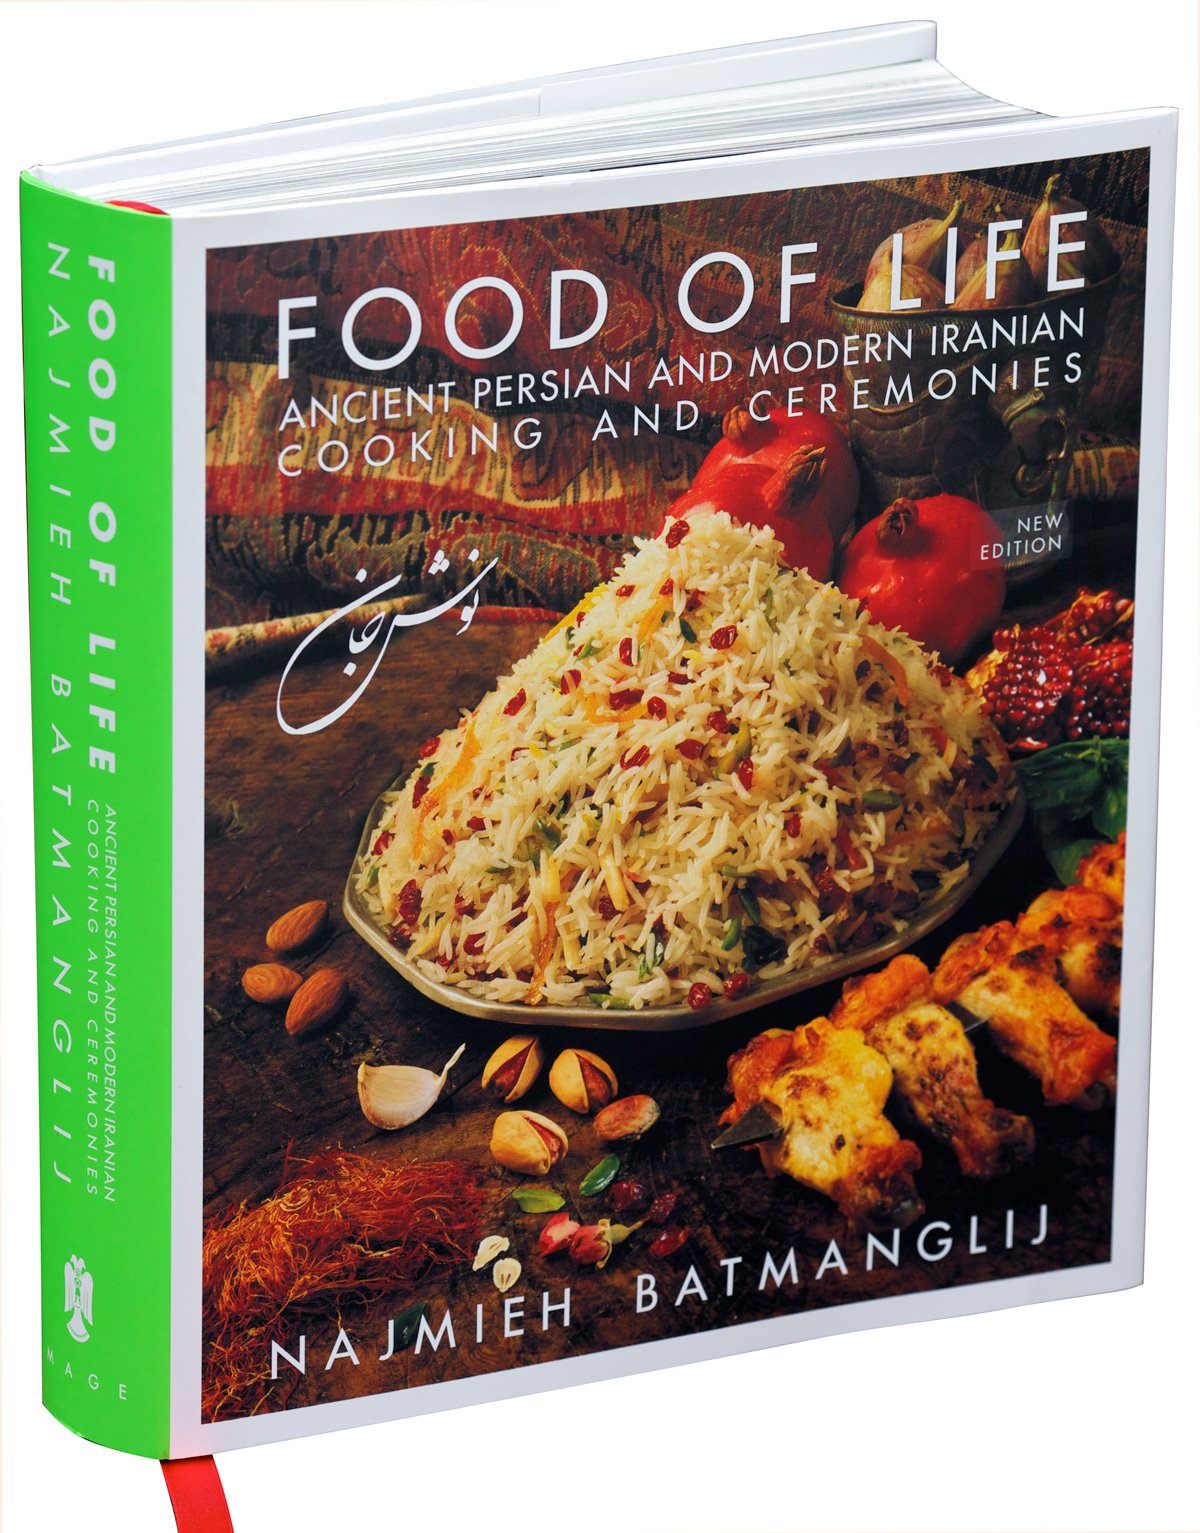 Food of Life: Ancient Persian and Modern Iranian Cooking and Ceremonies by Brand: Mage Publishers